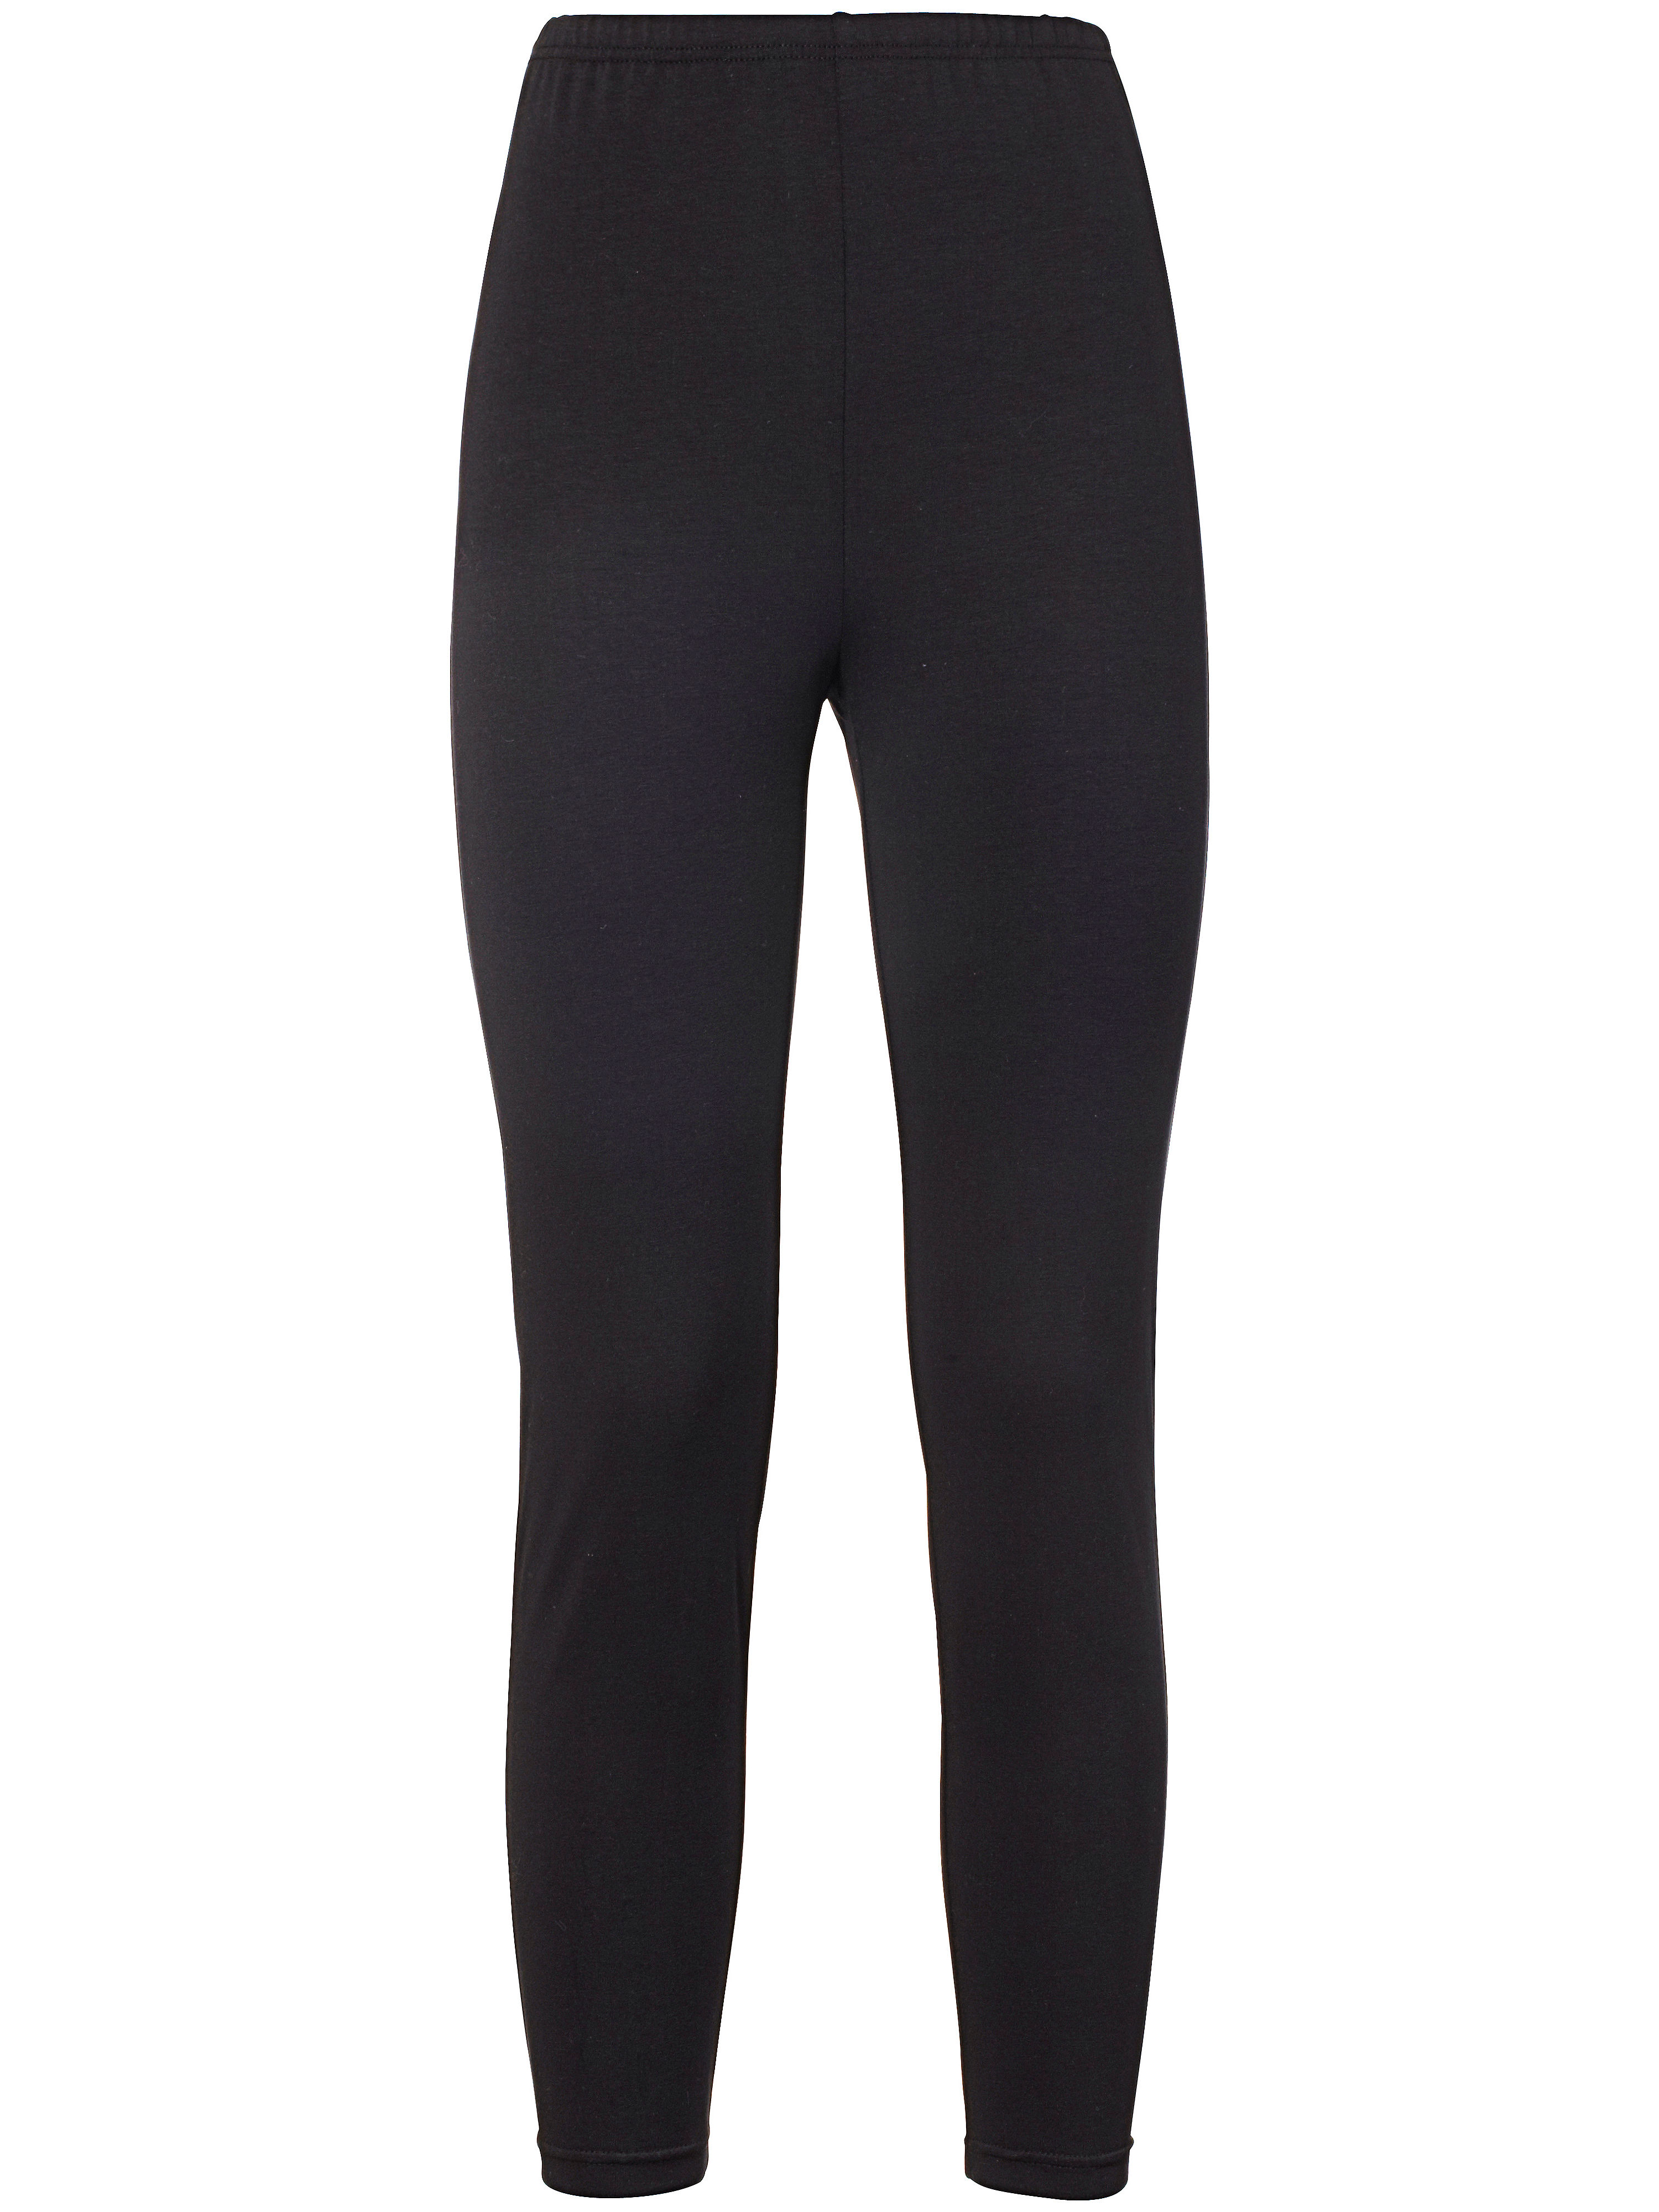 7/8-legging Van Green Cotton zwart